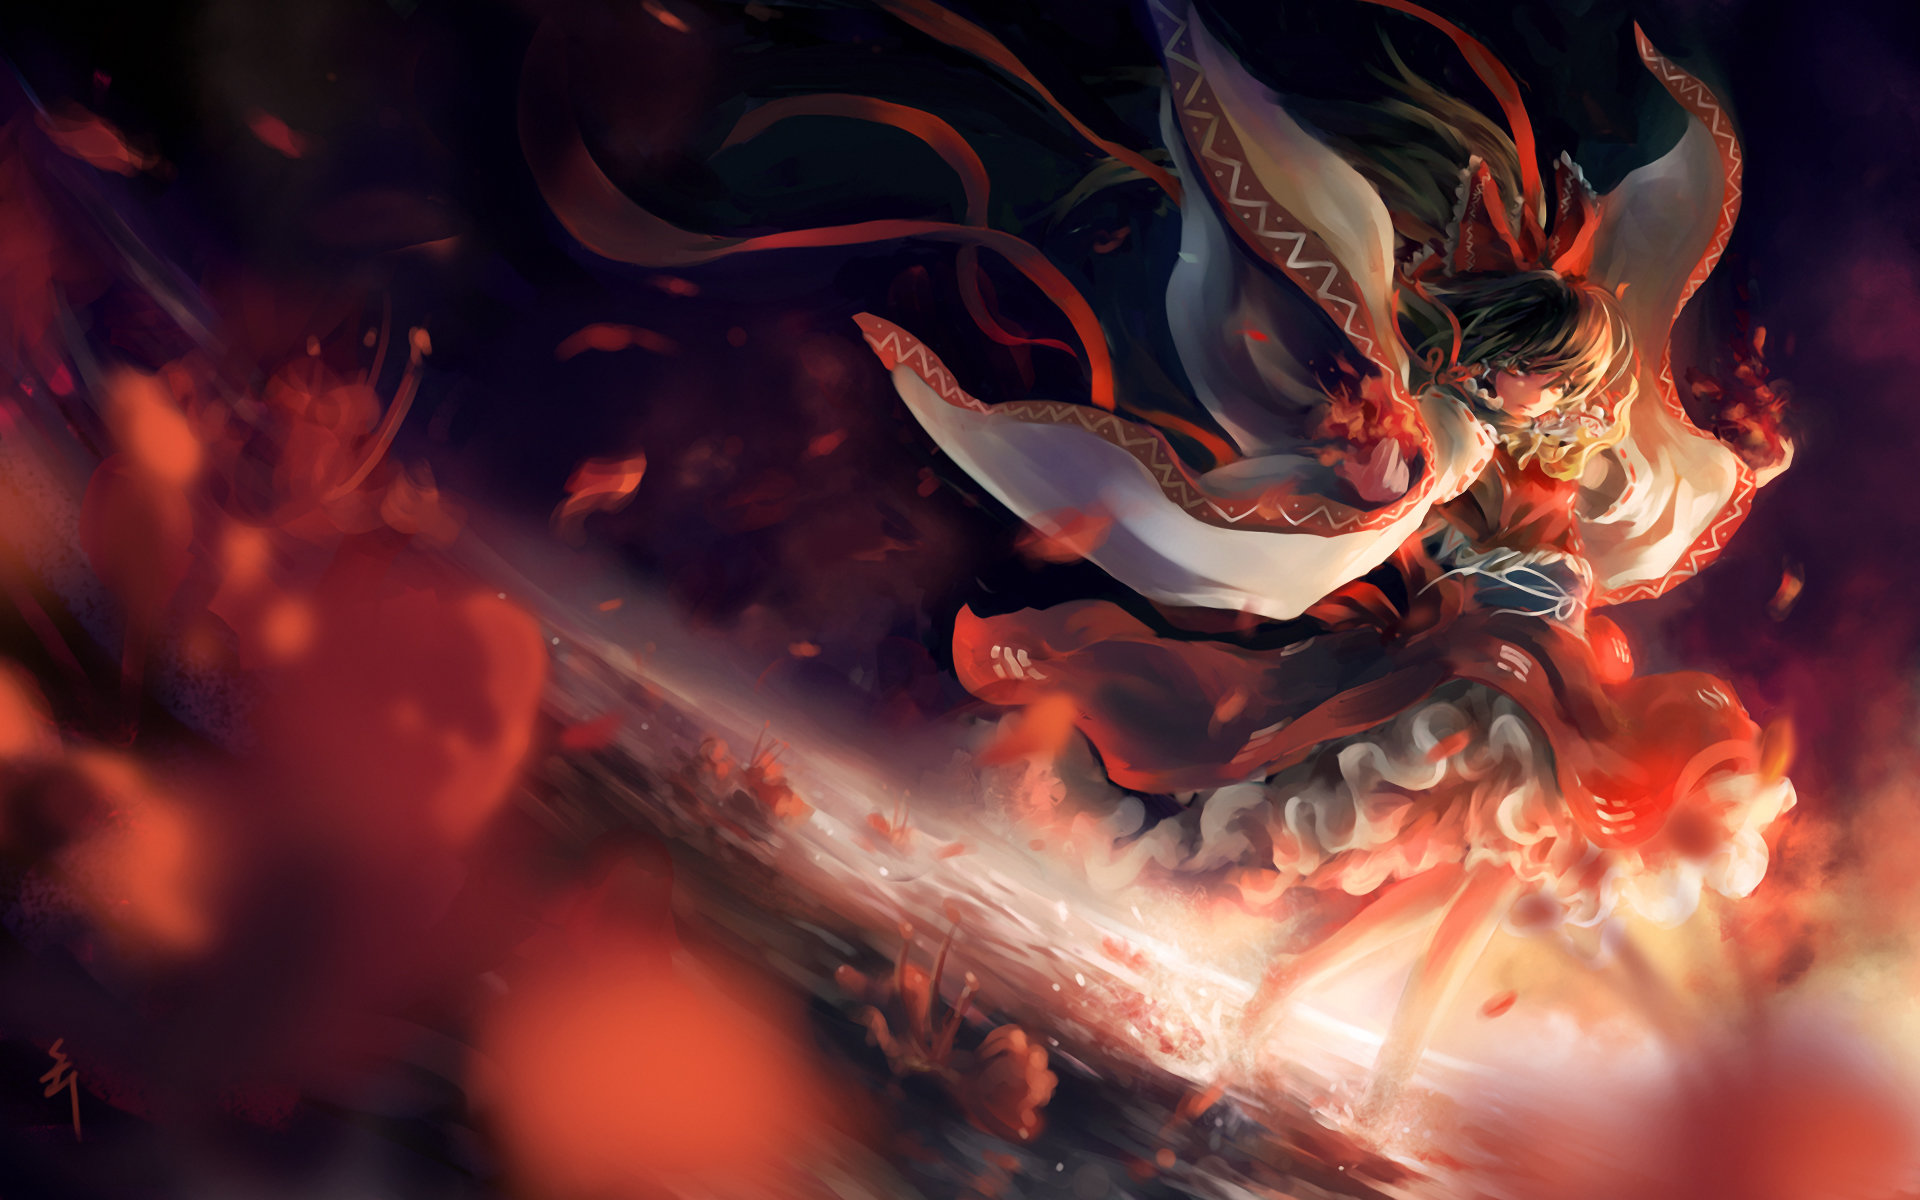 Awesome Reimu Hakurei free wallpaper ID:221044 for hd 1920x1200 desktop